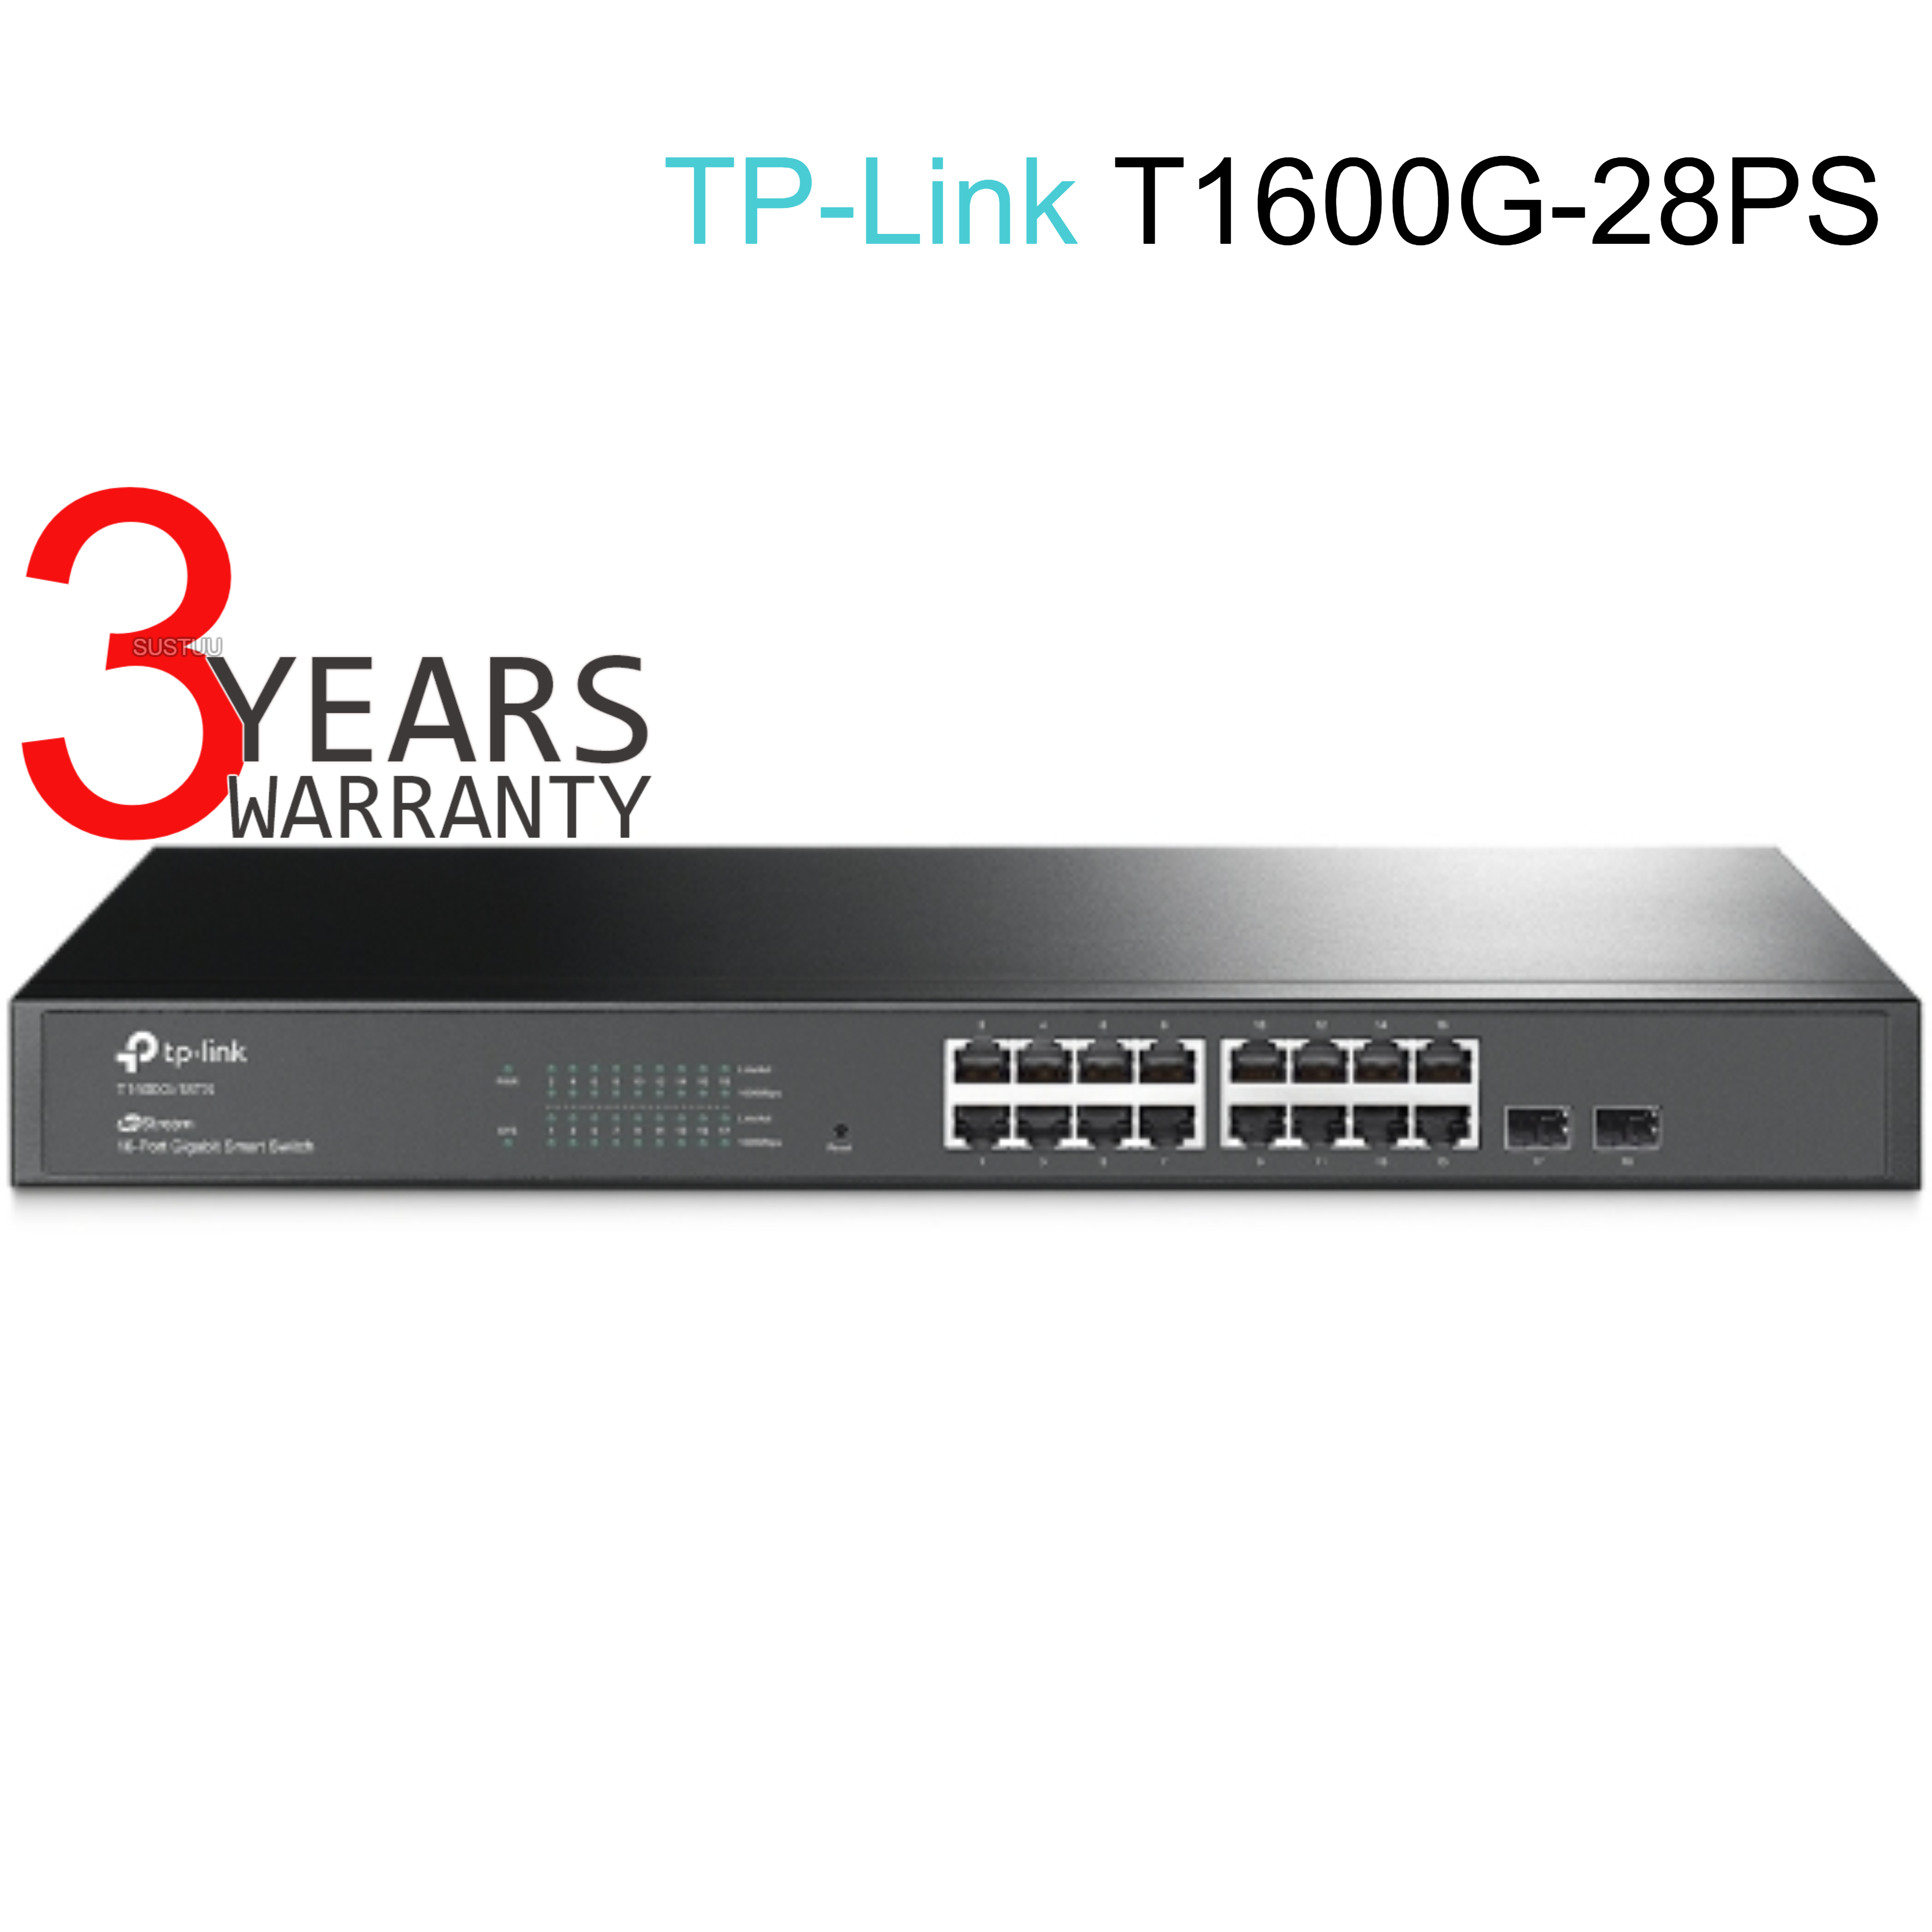 TP-Link T1600G-28PS|JetStream 24-Port Gigabit Smart PoE+ Switch with 4 SFP Slots